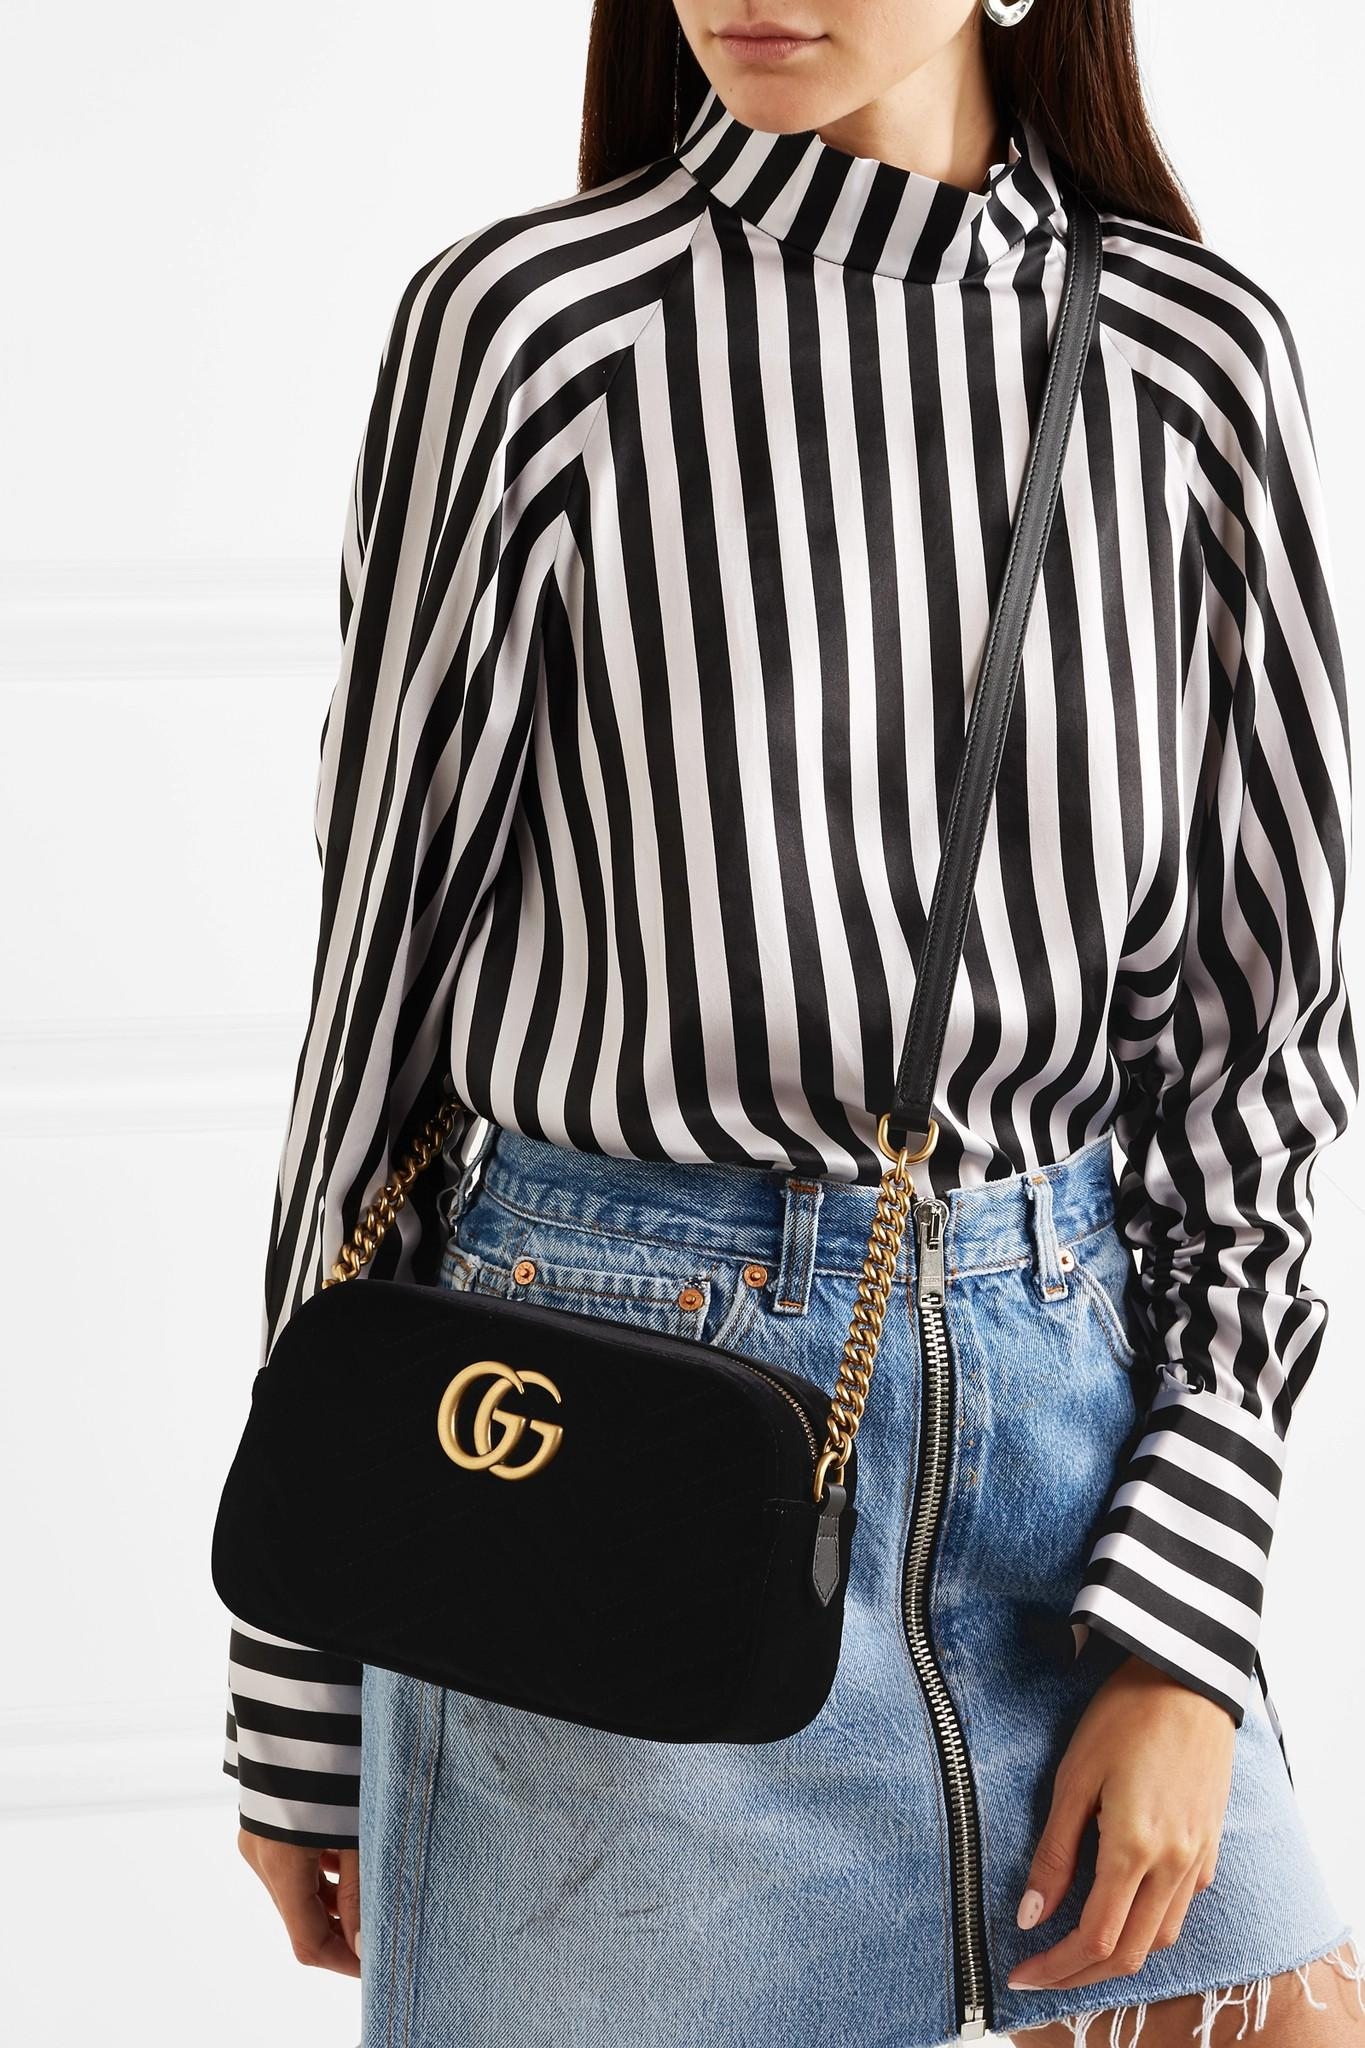 369747b7721 Gucci - Black Gg Marmont Small Leather-trimmed Quilted Velvet Shoulder Bag  - Lyst. View fullscreen